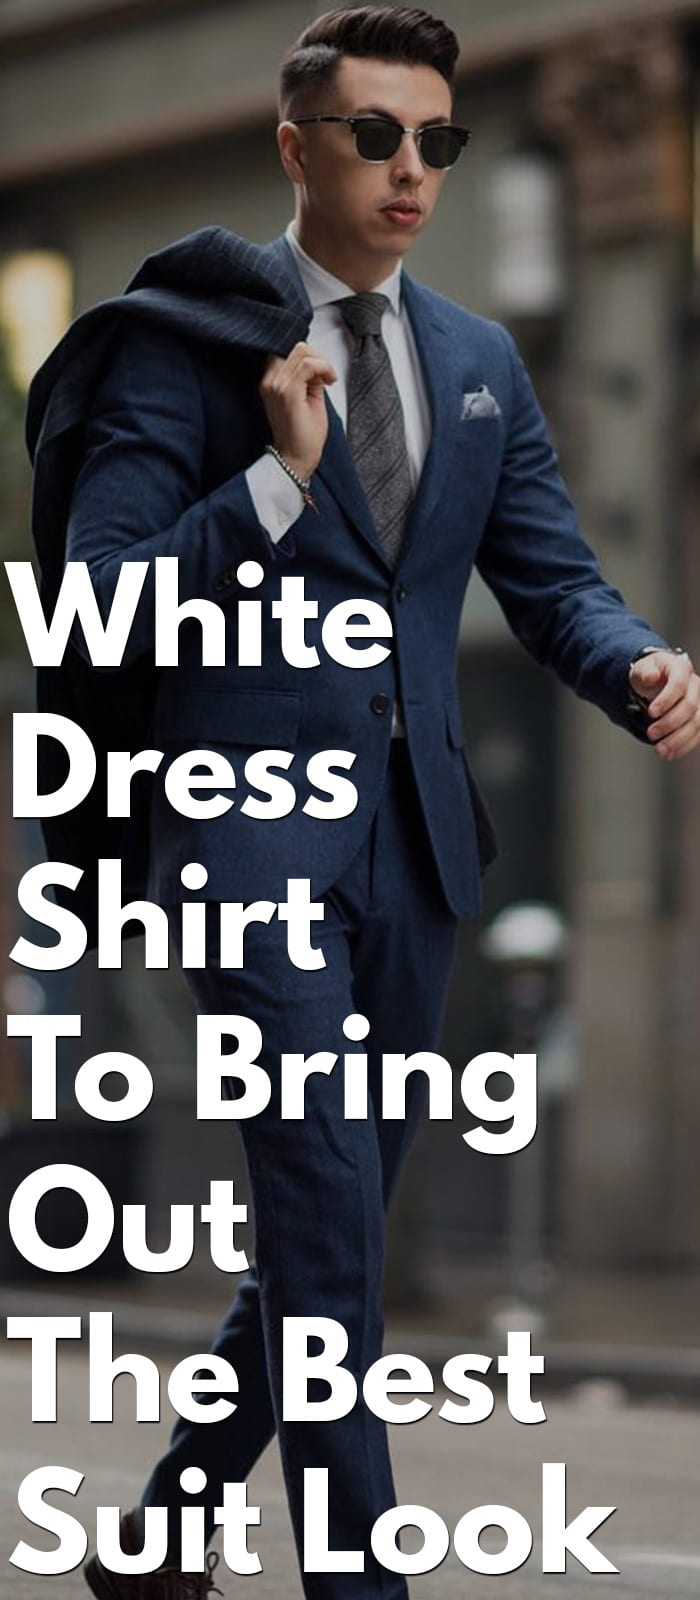 White Dress Shirt To Bring Out The Best Suit Look